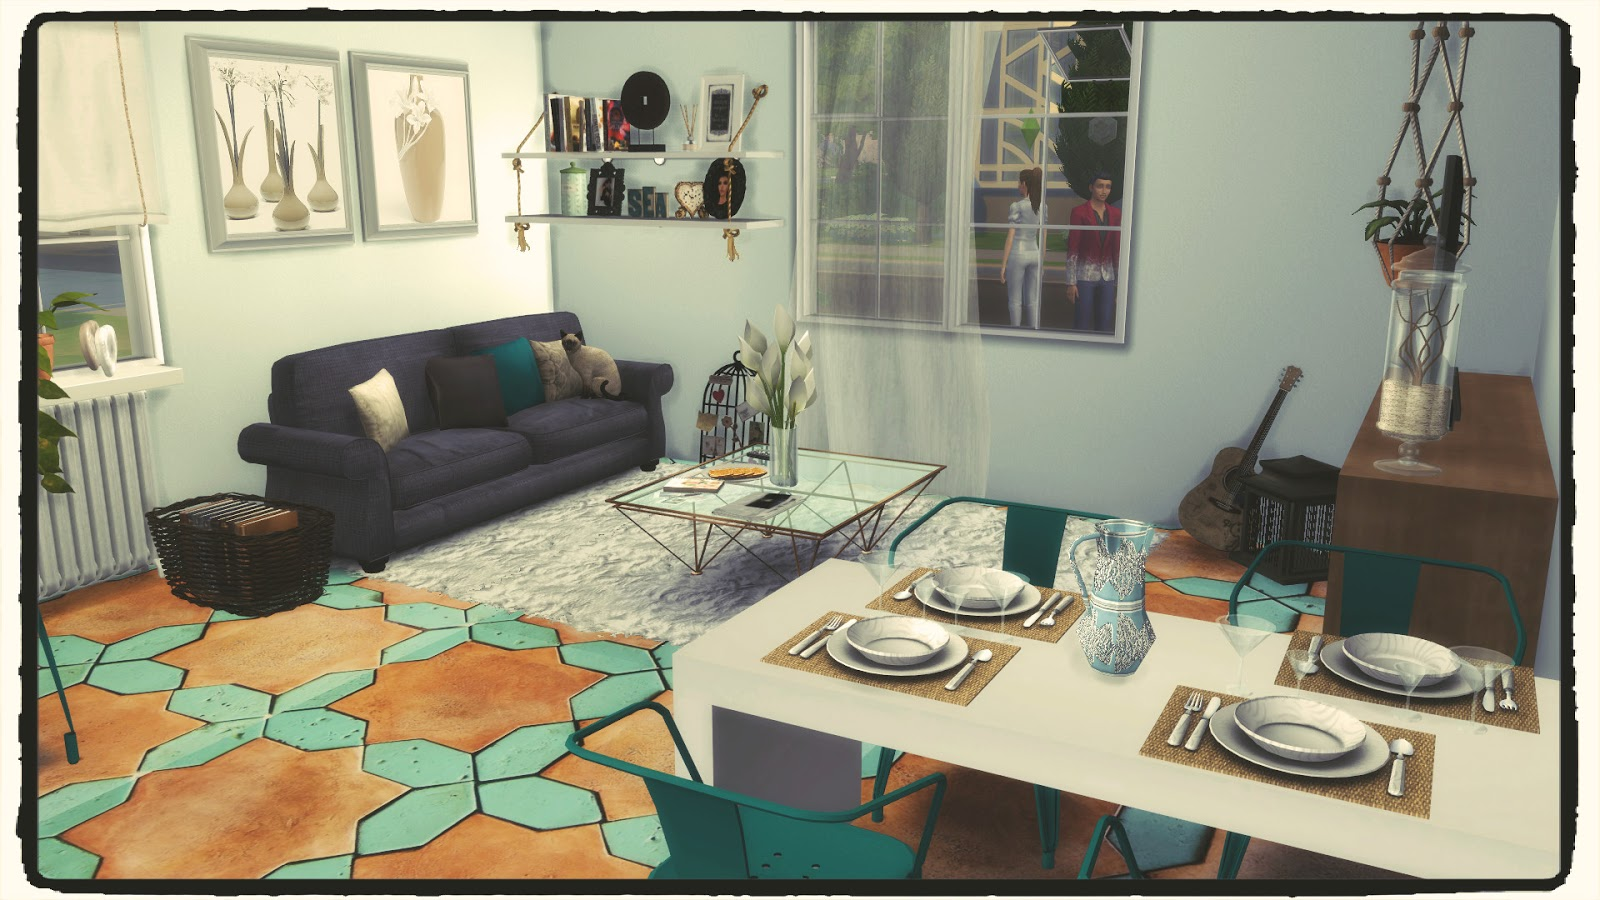 Sims 4 kitchen living room iii build decoration for Living room sims 4